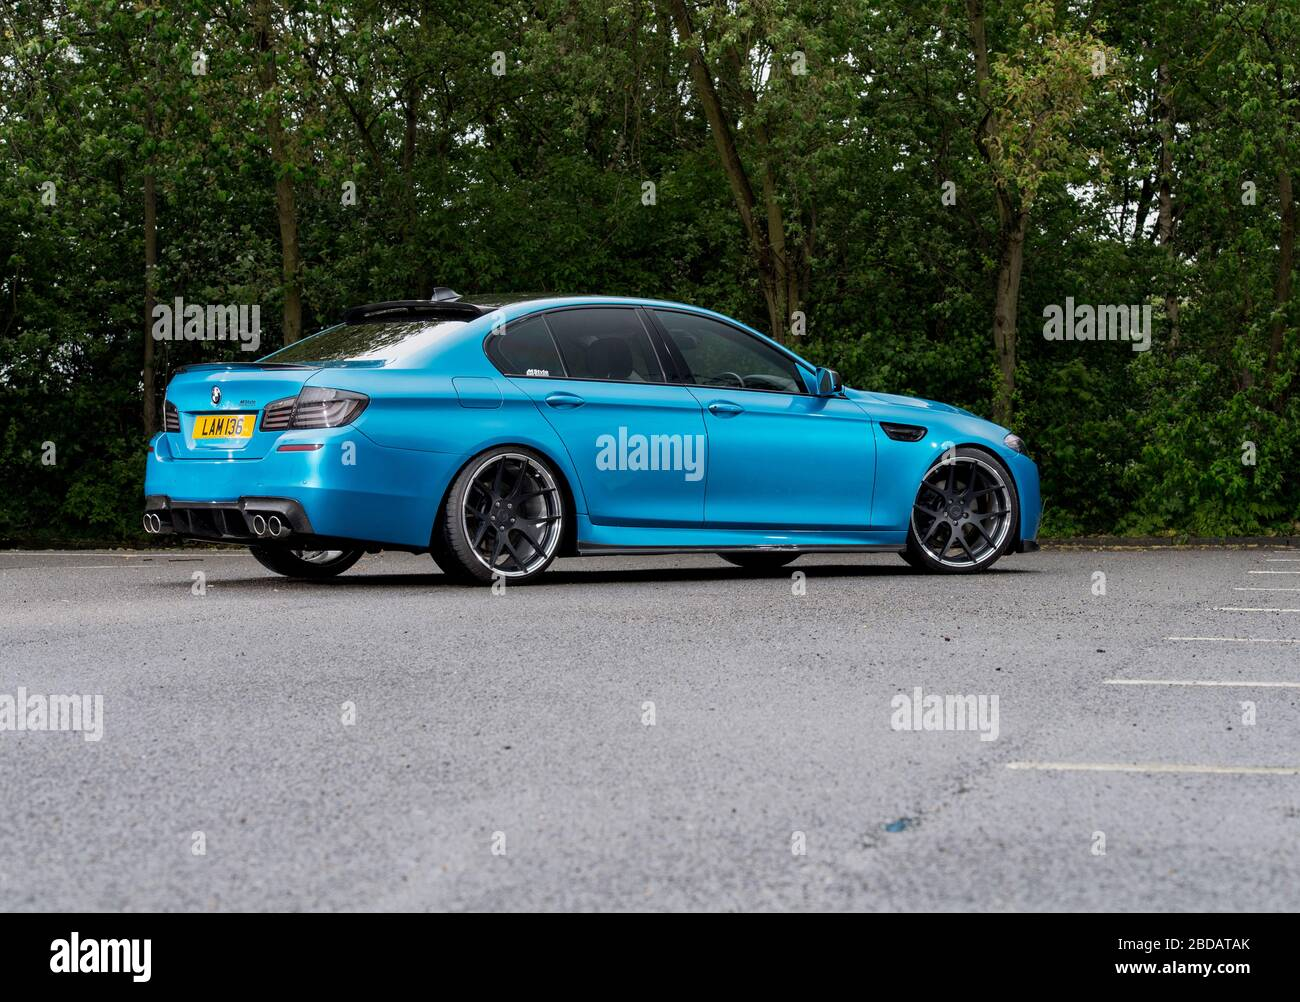 Bmw 520d High Resolution Stock Photography And Images Alamy